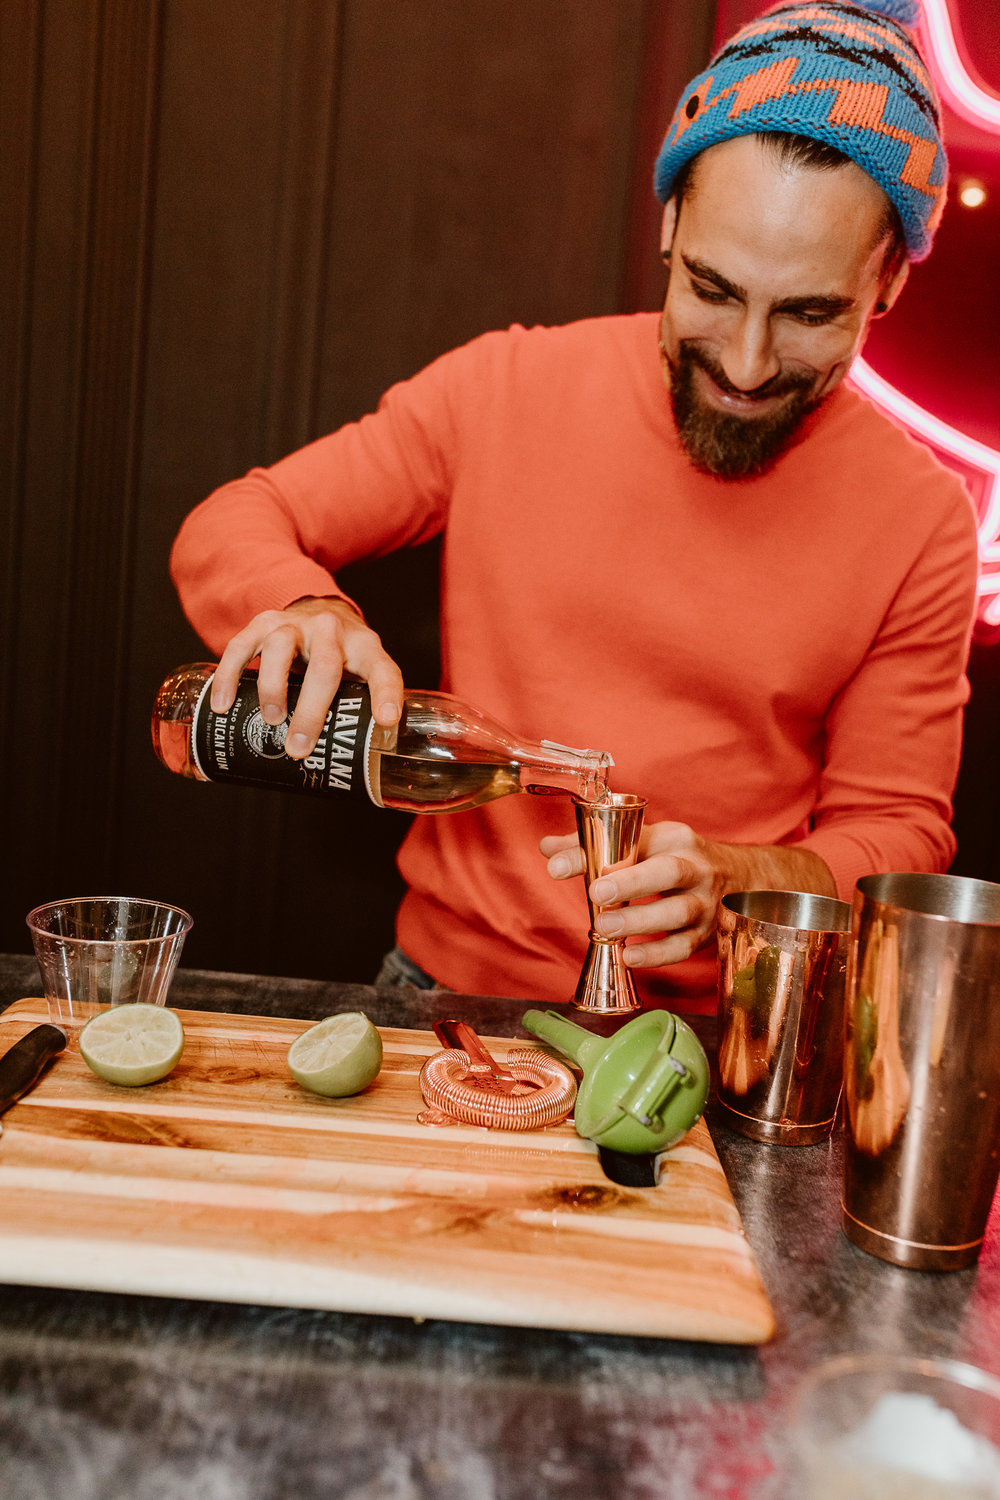 Gio Gutierrez of Havana Club Rum shakes up drinks at the chicken bar | drinkingwithchickens.com